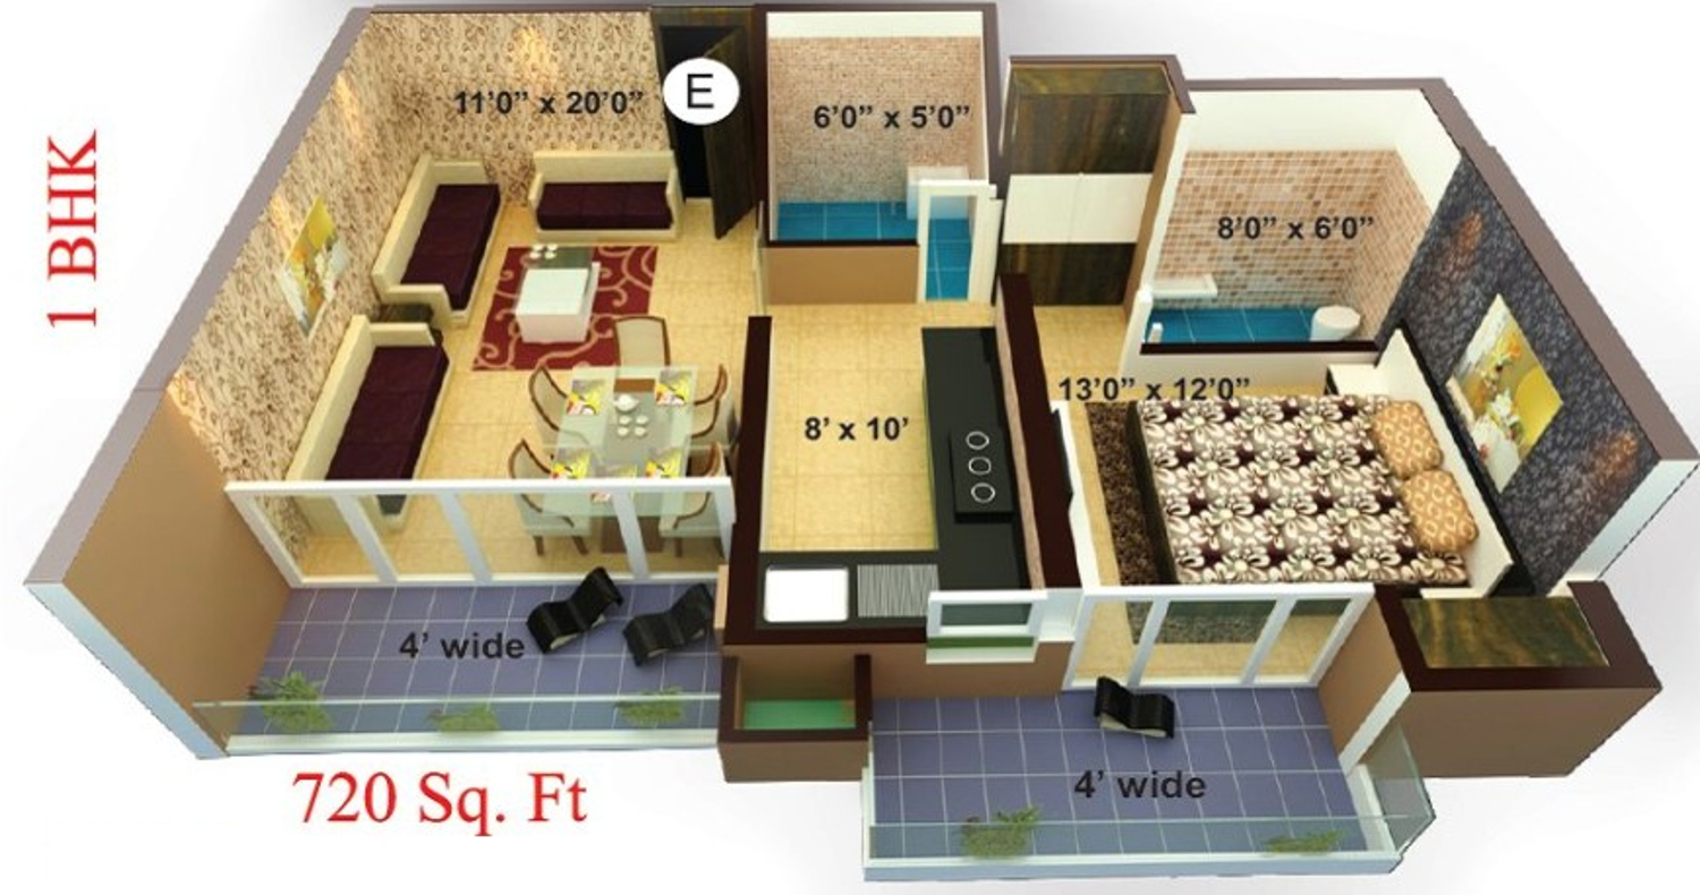 720 Sq Ft Apartment Floor Plan Of 1250 Sq Ft 2 Bhk 2t Apartment For Sale In Shree Sai Baba